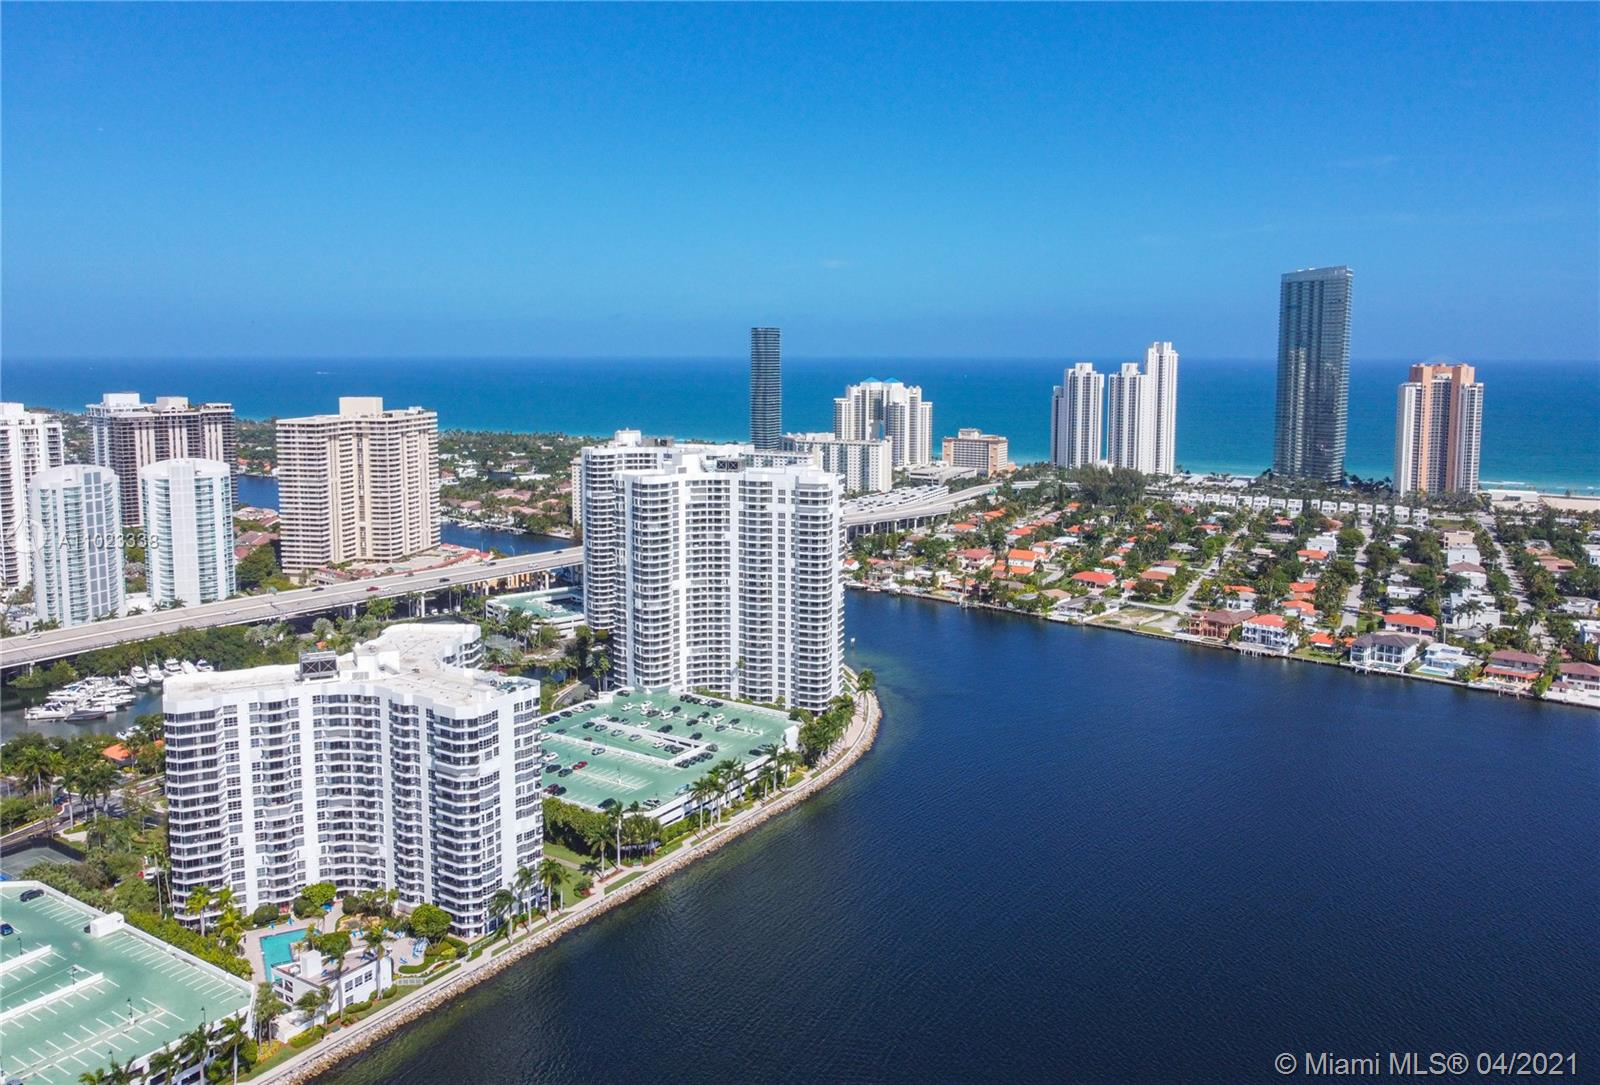 Mystic Pointe Tower 400 #506 - 3500 Mystic Pointe Dr #506, Aventura, FL 33180